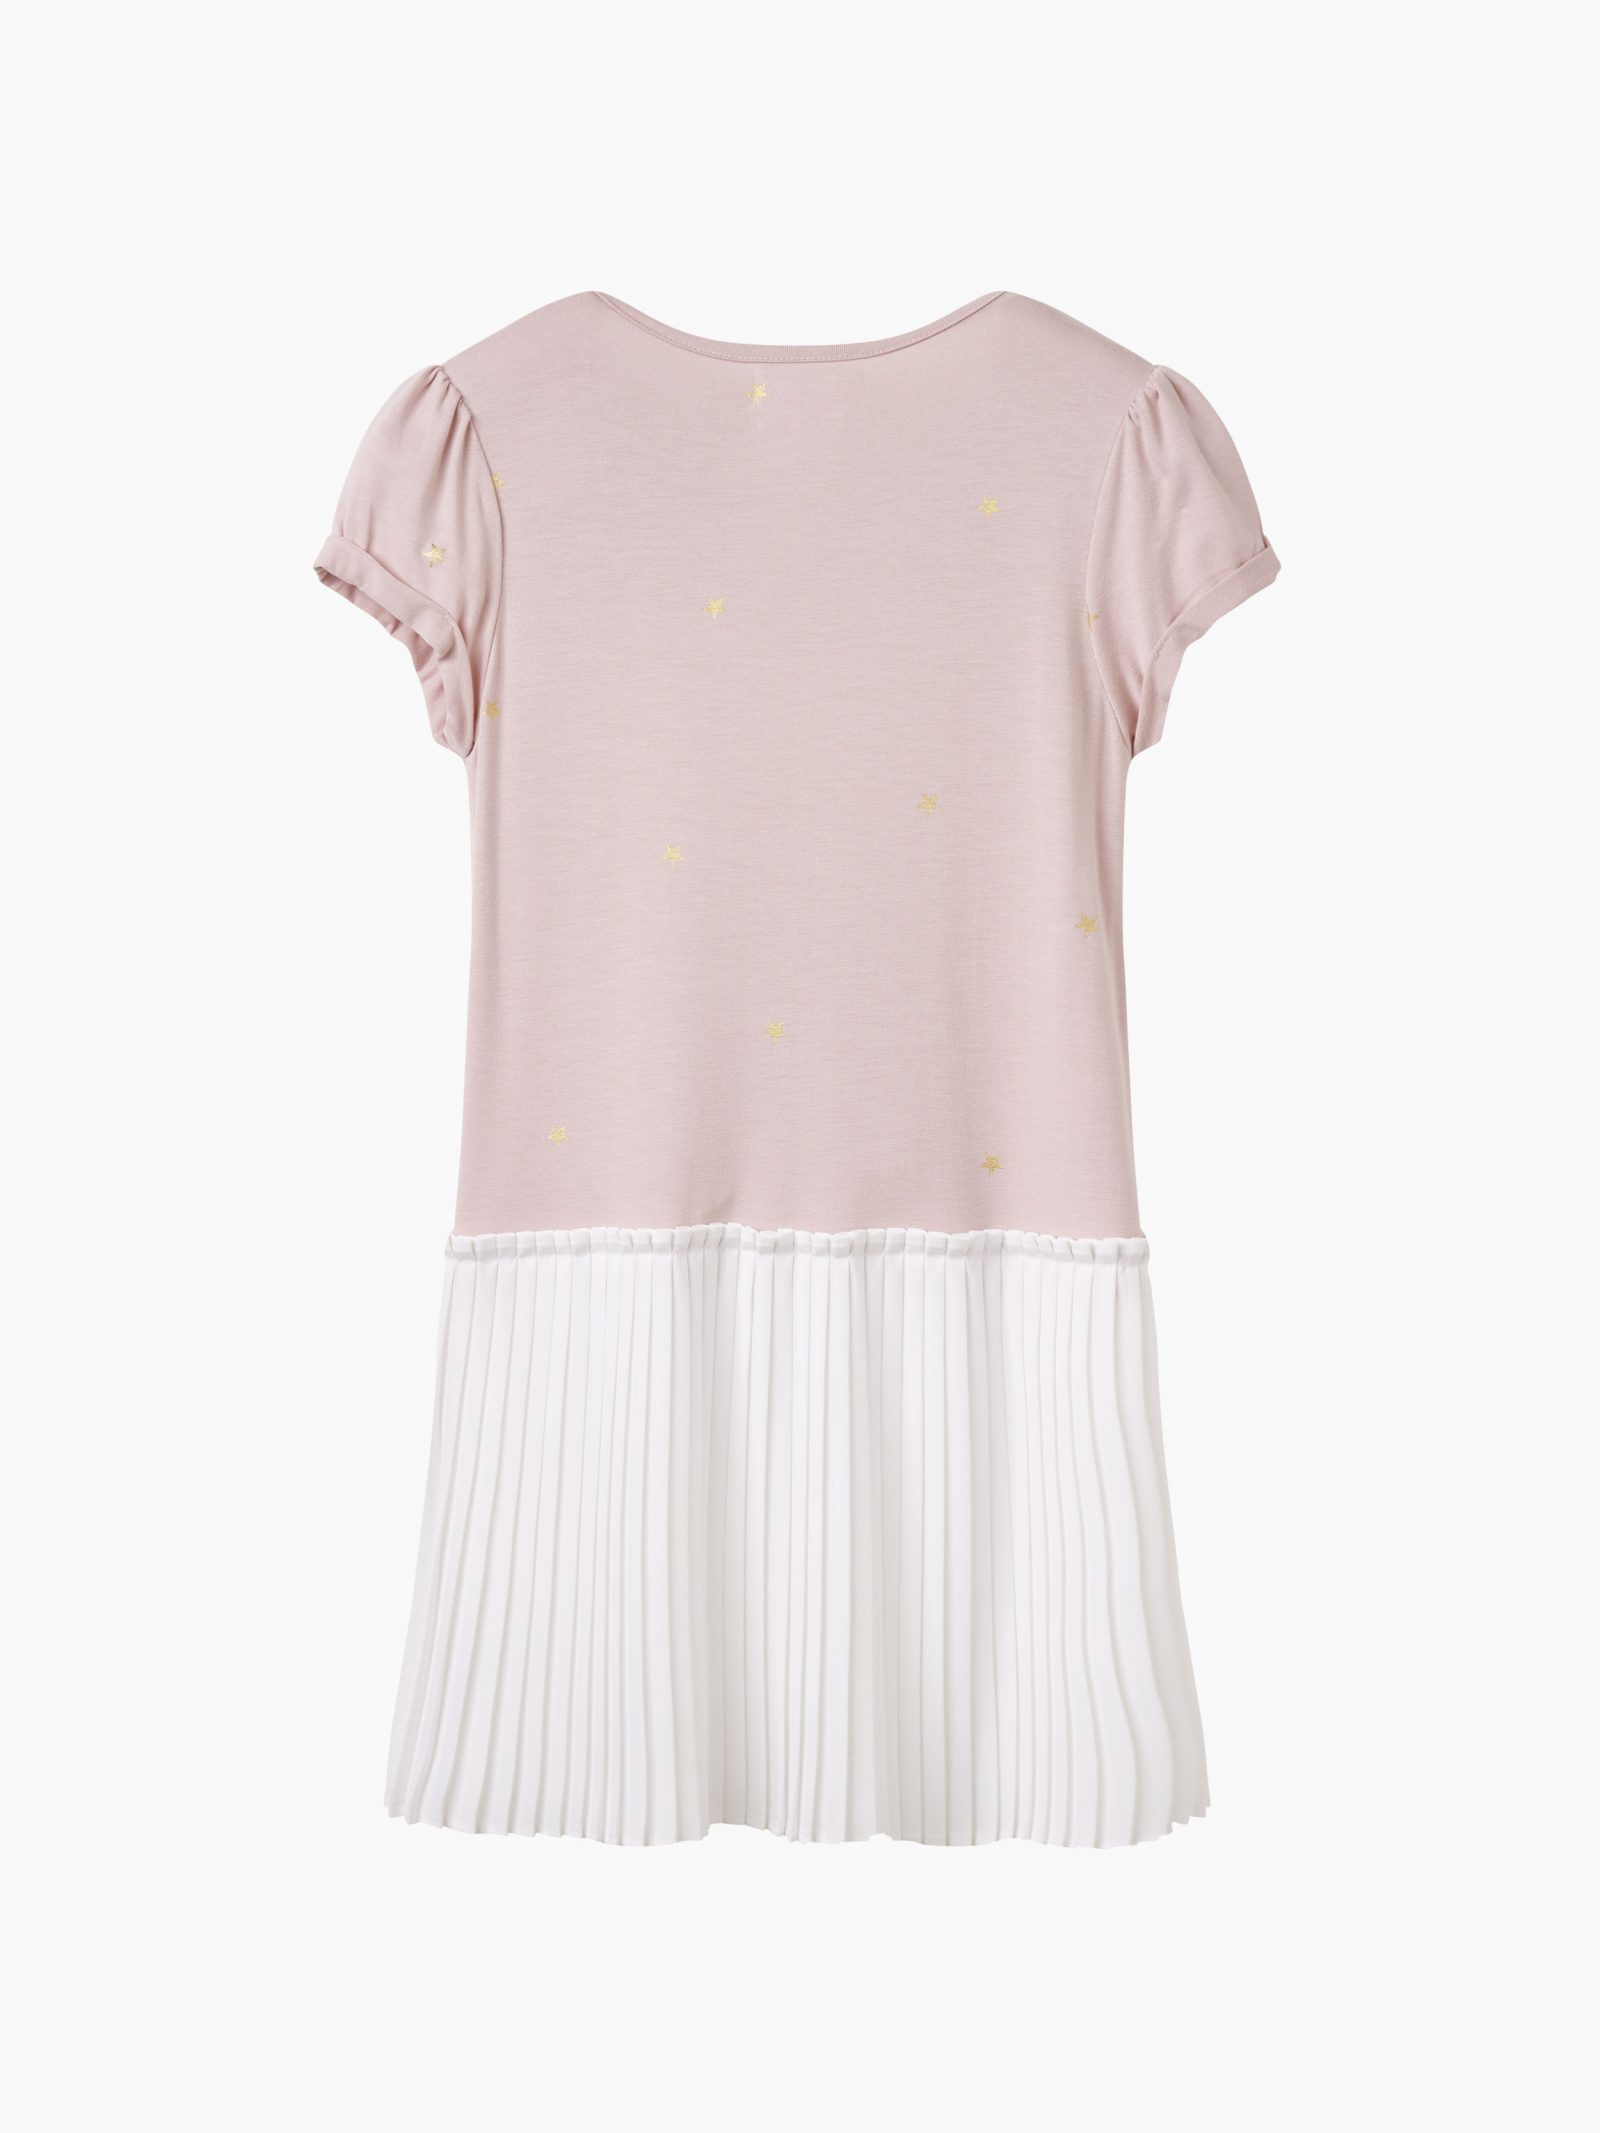 Girls dusky pink and gold star pleated dress